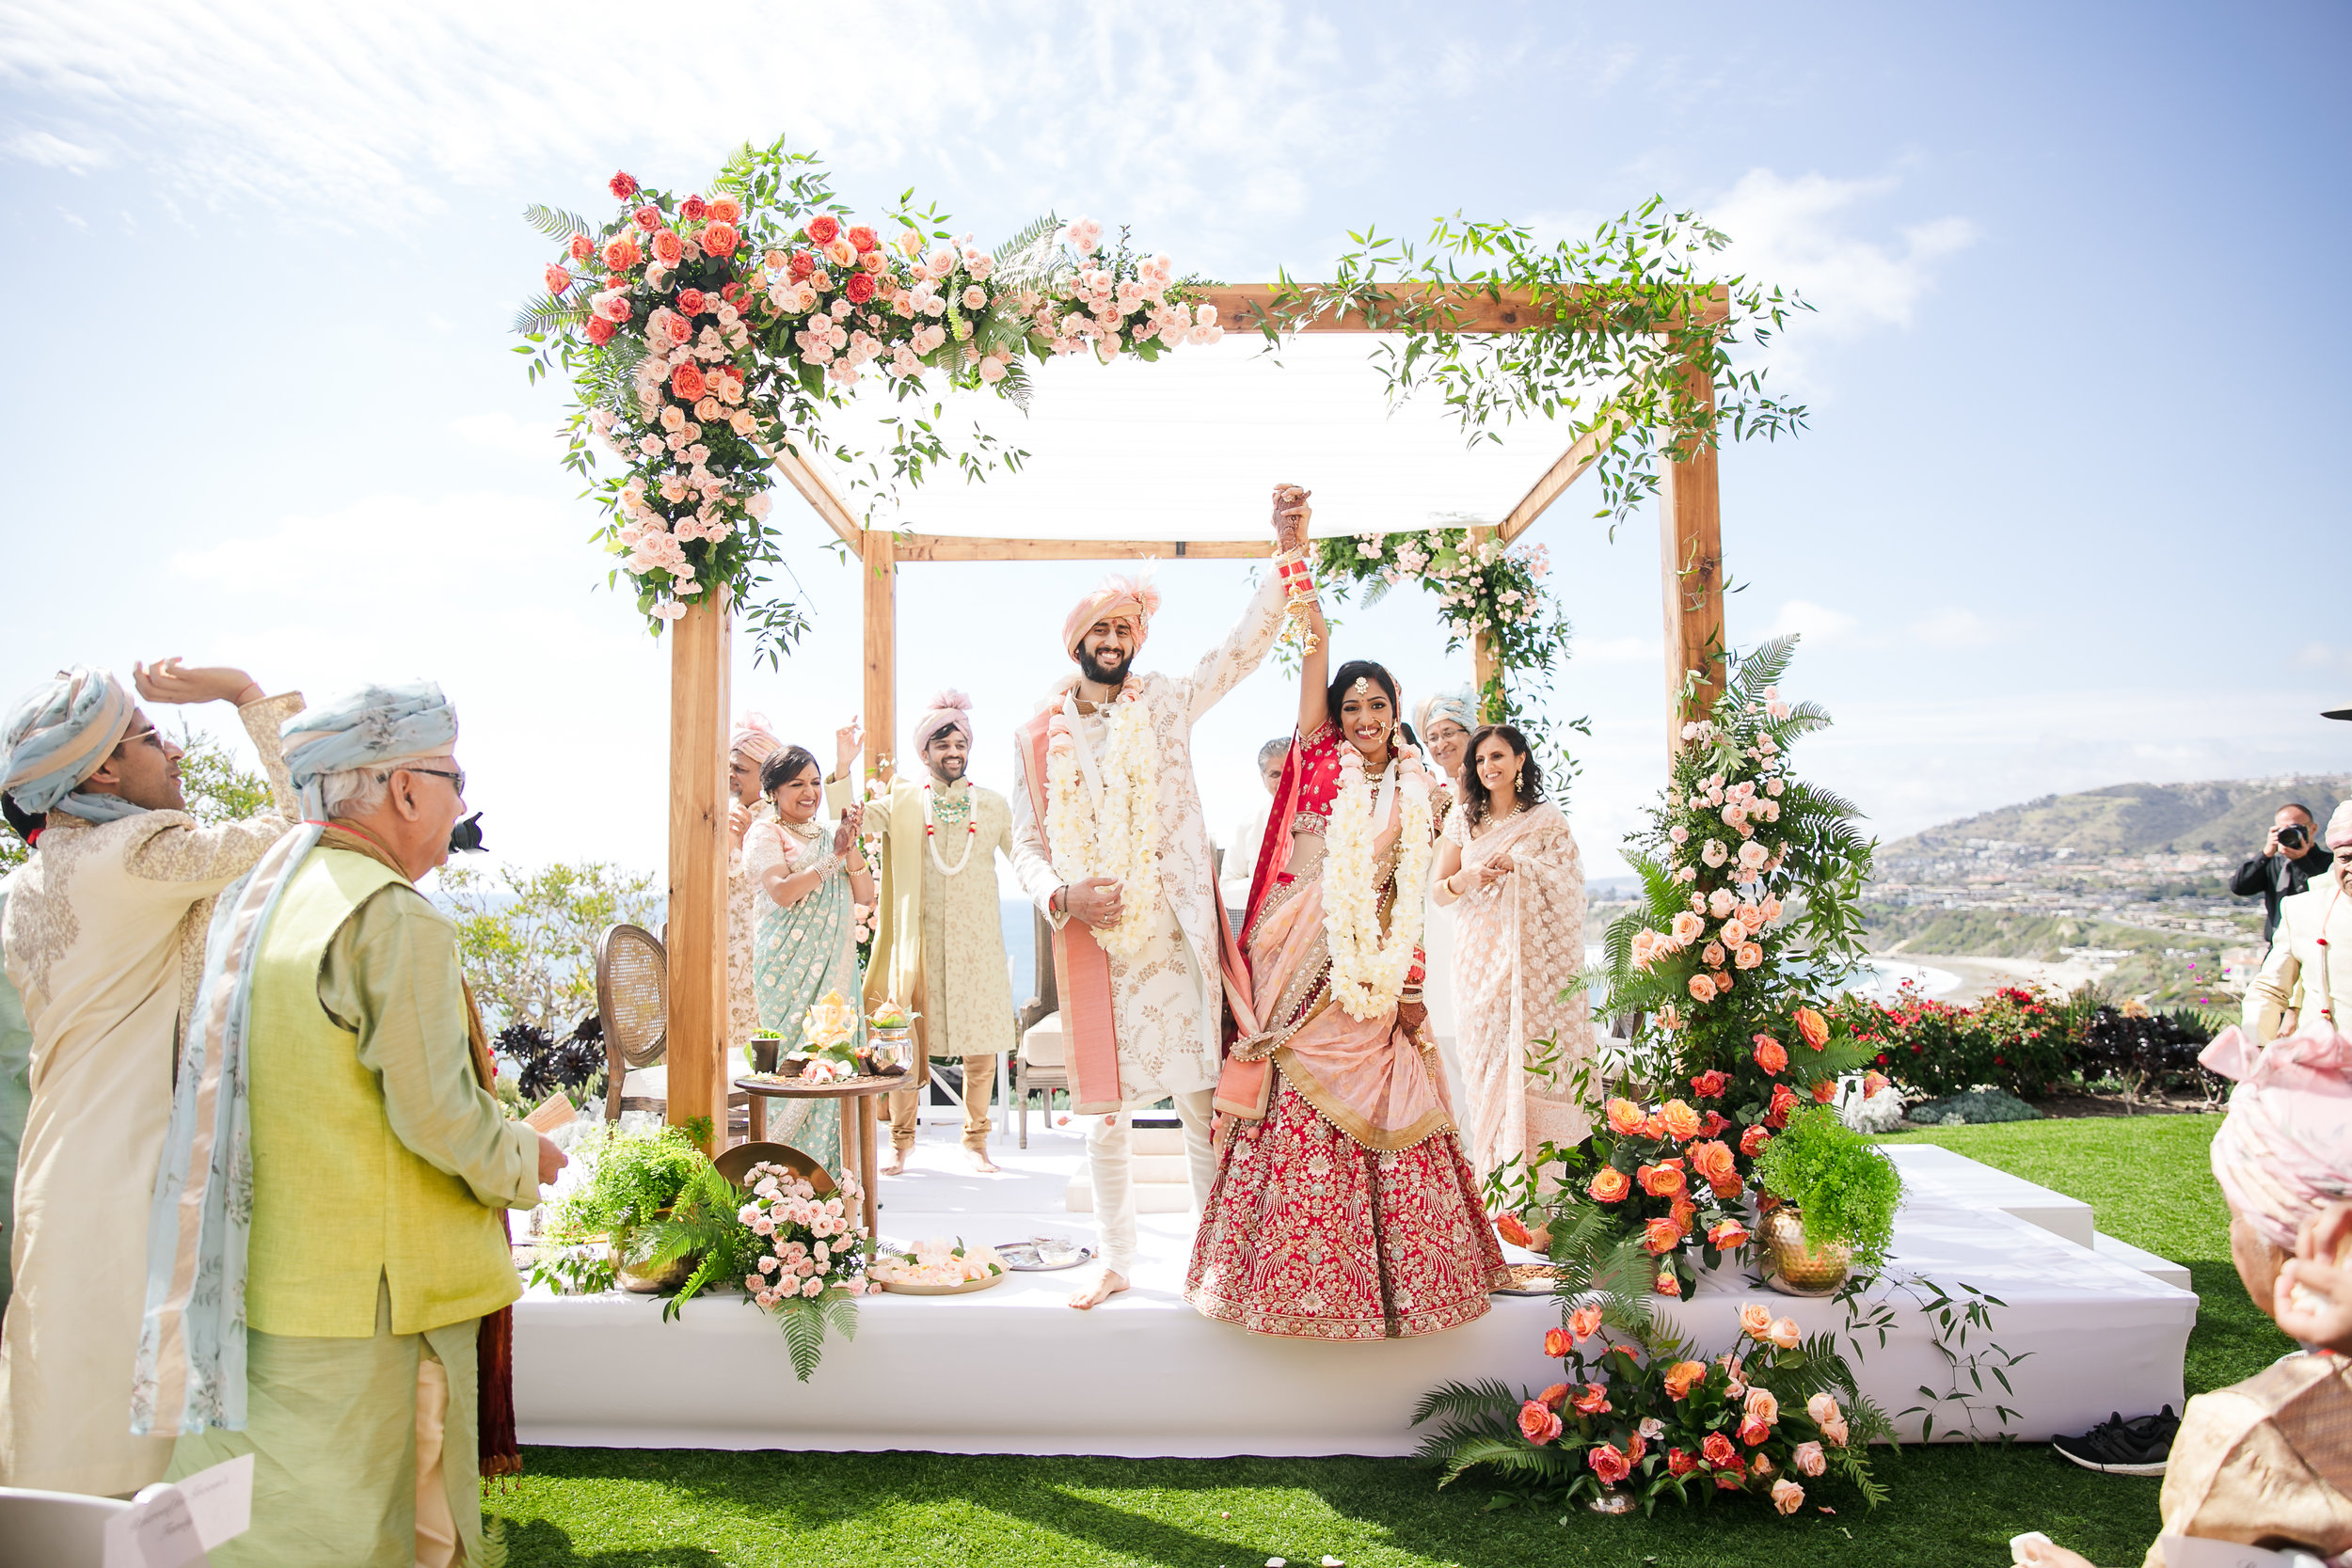 0824-PS-Ritz-Carlton-Laguna-Niguel-Dana-Point-Indian-Wedding-Photography.jpg